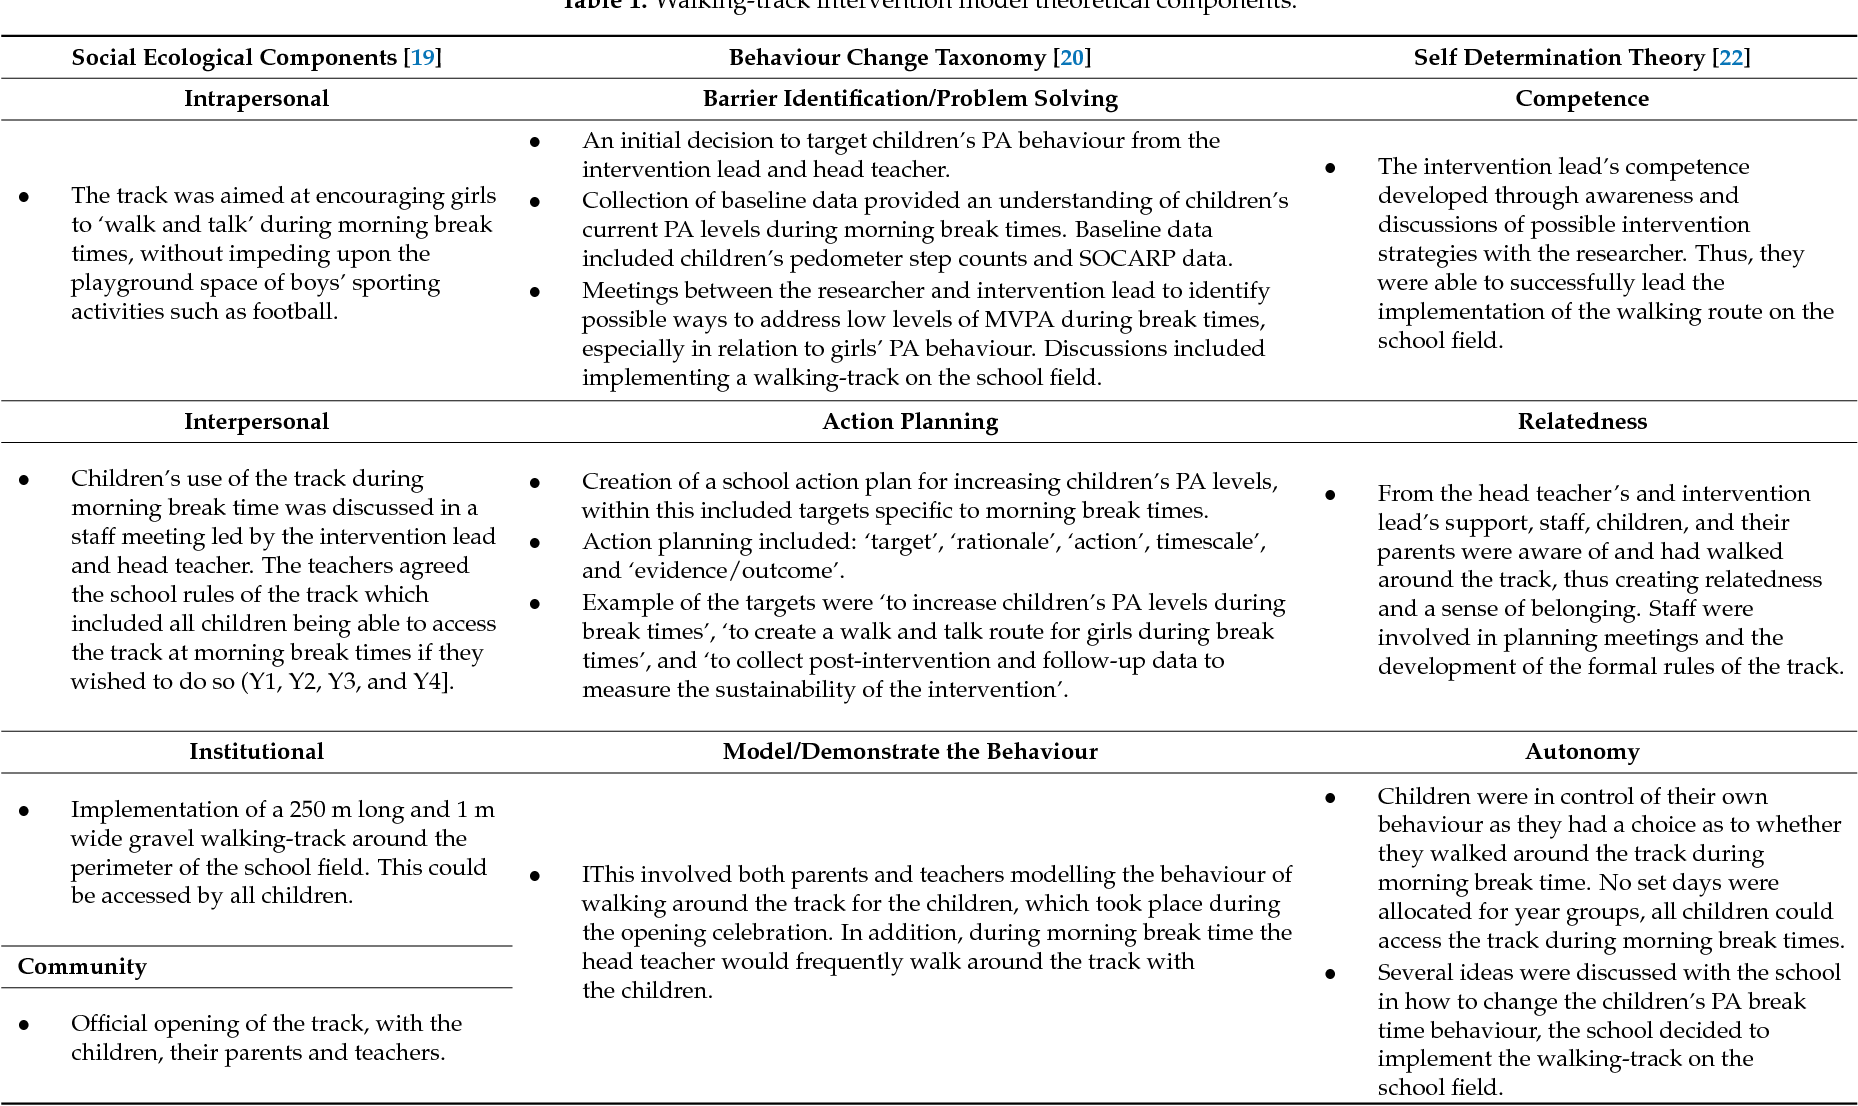 Table 1 from Evaluation of a Walking-Track Intervention to